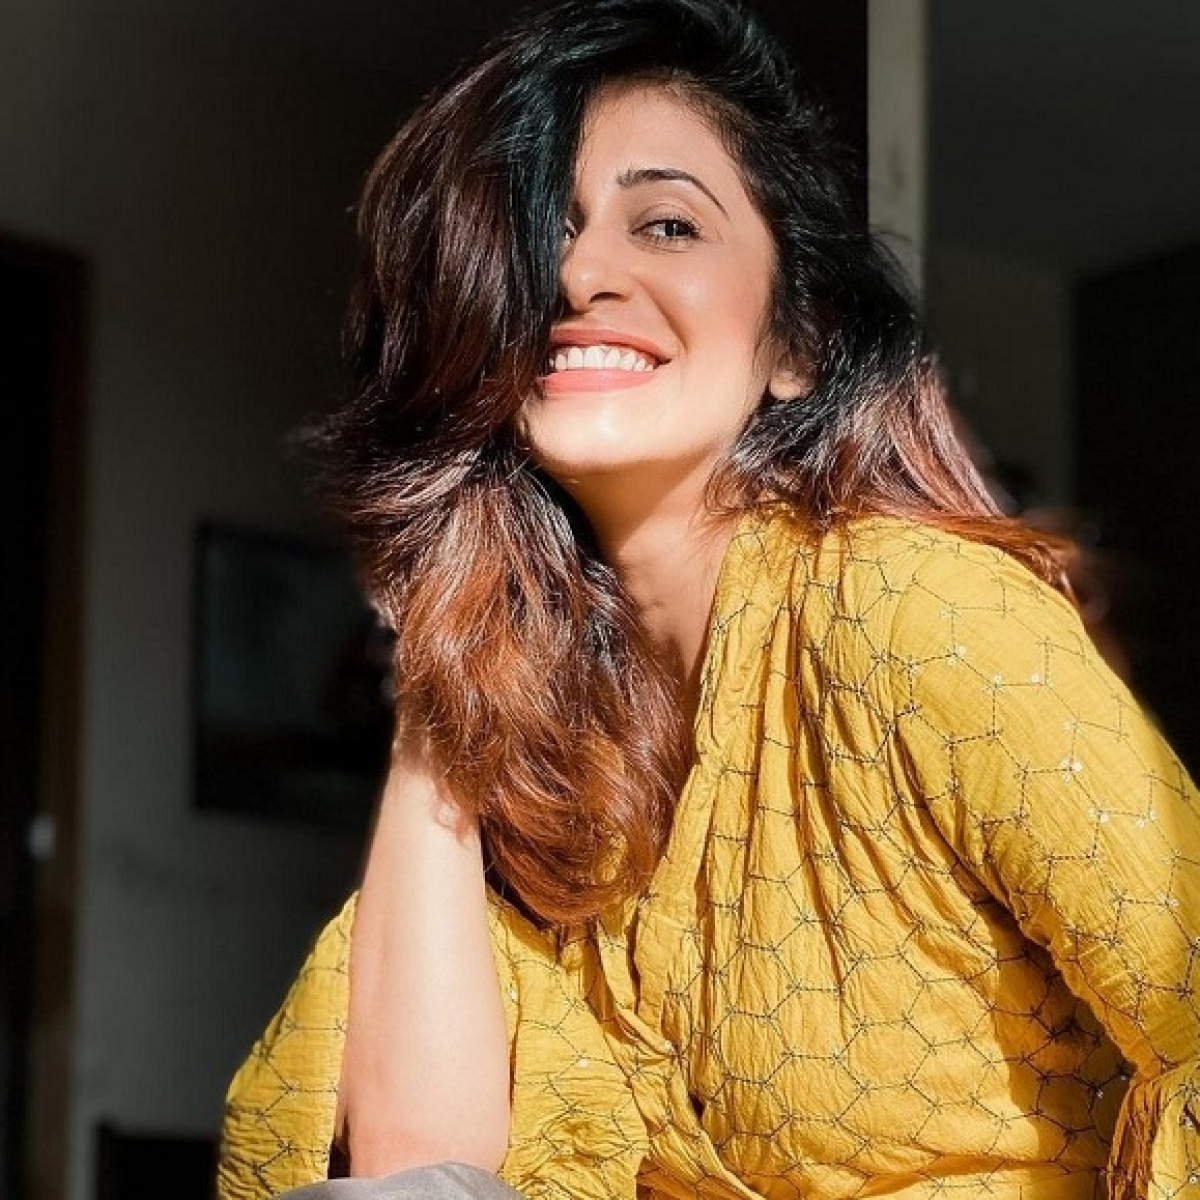 Mother's Day 2021: 'I don't give heed to this age factor,' says Kishwer Merchant on embracing motherhood at 40